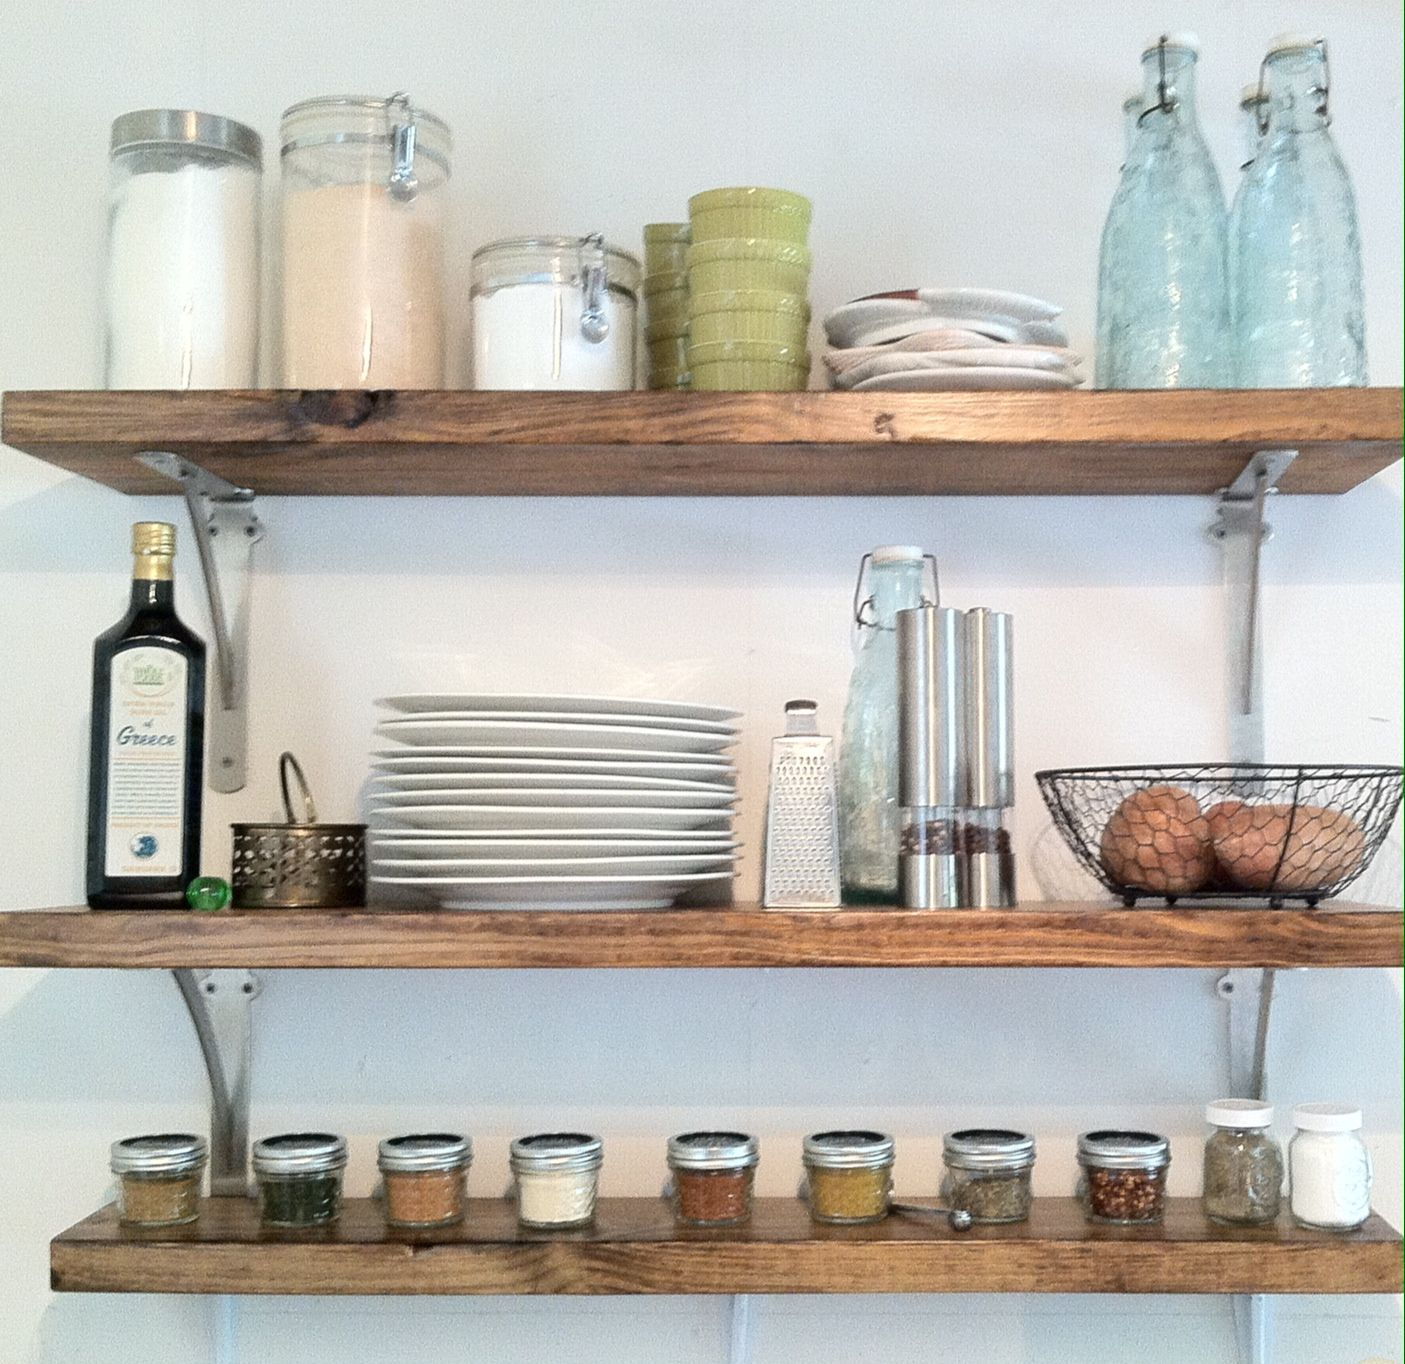 Diy rustic chic wooden kitchen shelves above stove. The tops of the mason  jars were